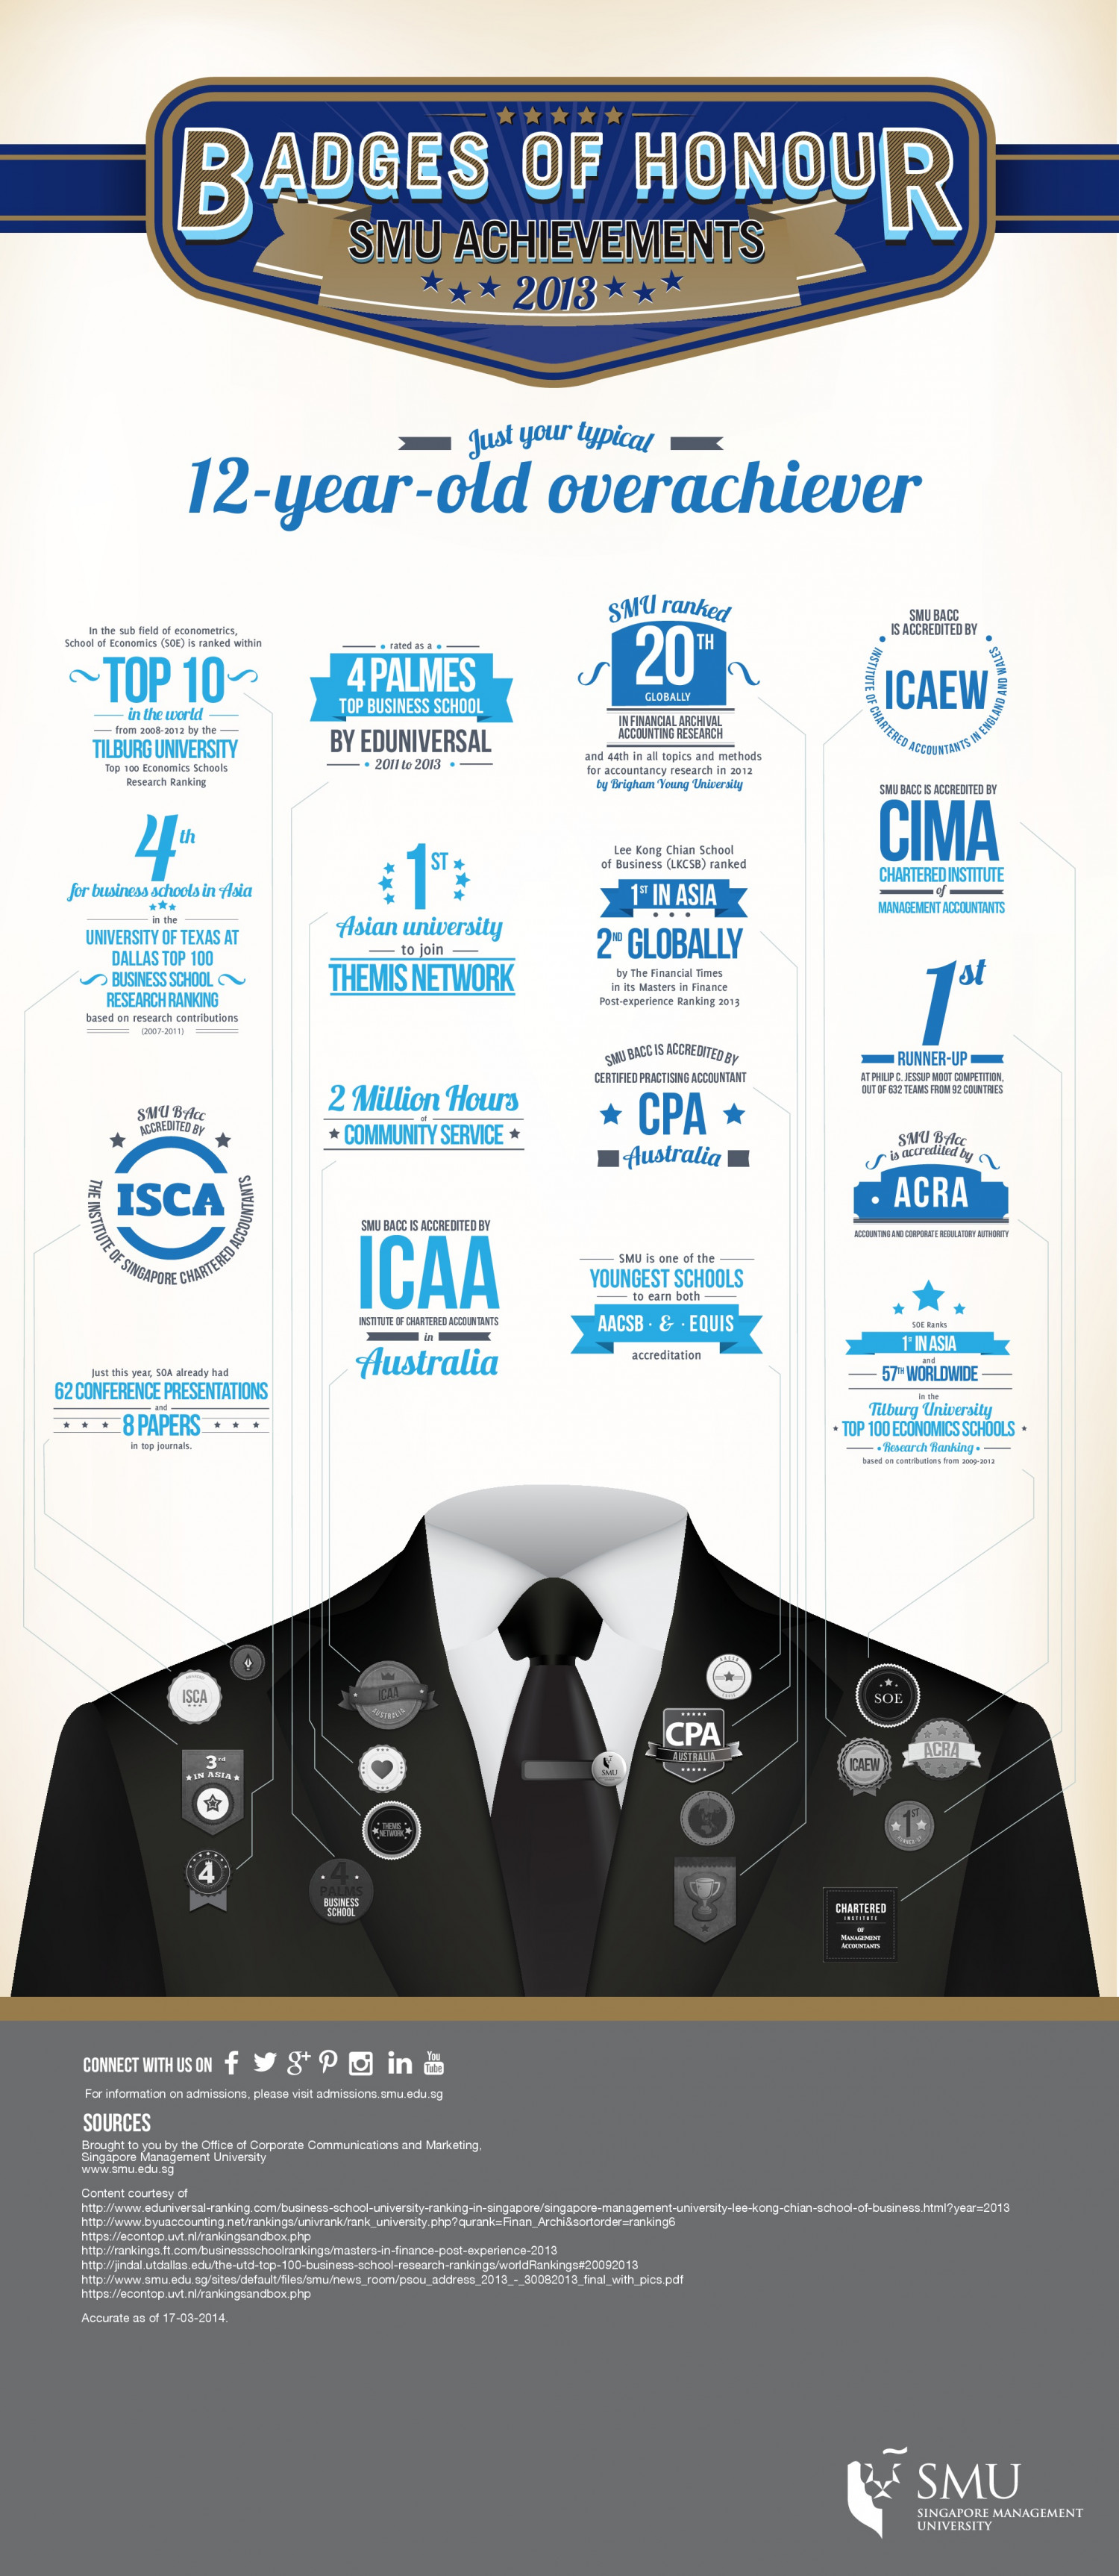 Badges Of Honour: SMU Achievements 2013 Infographic